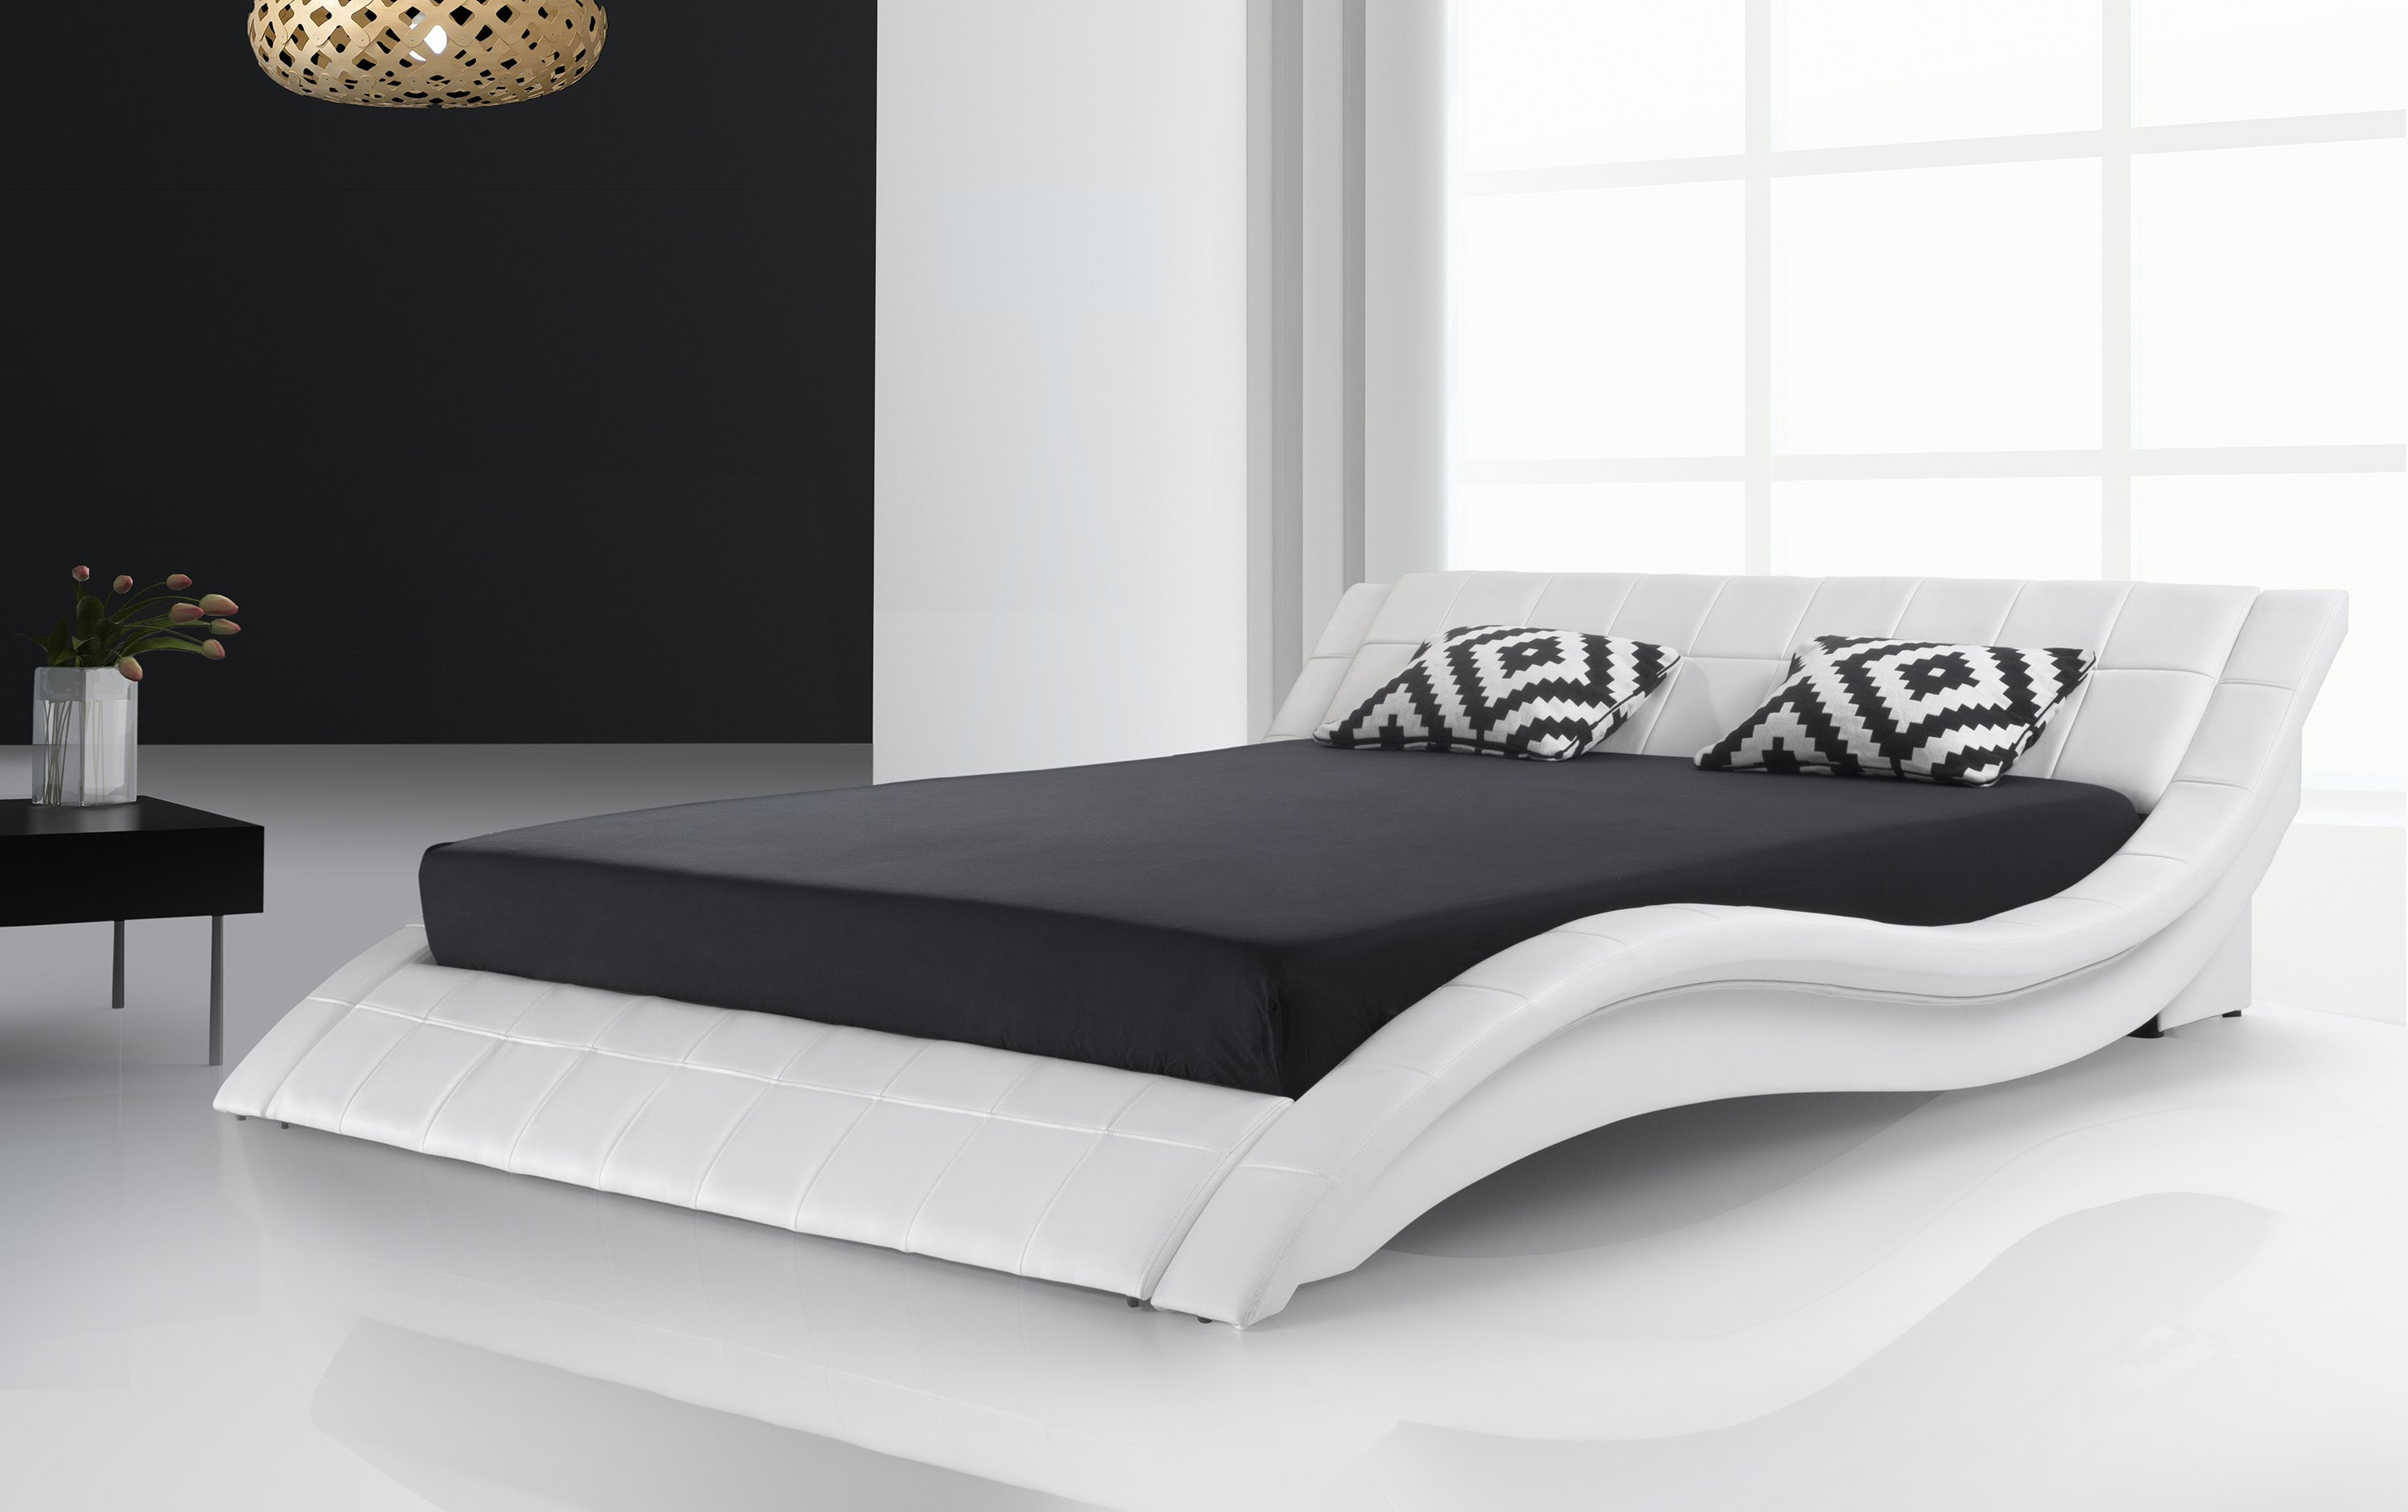 comment remplir un matelas eau beliani blog fr. Black Bedroom Furniture Sets. Home Design Ideas